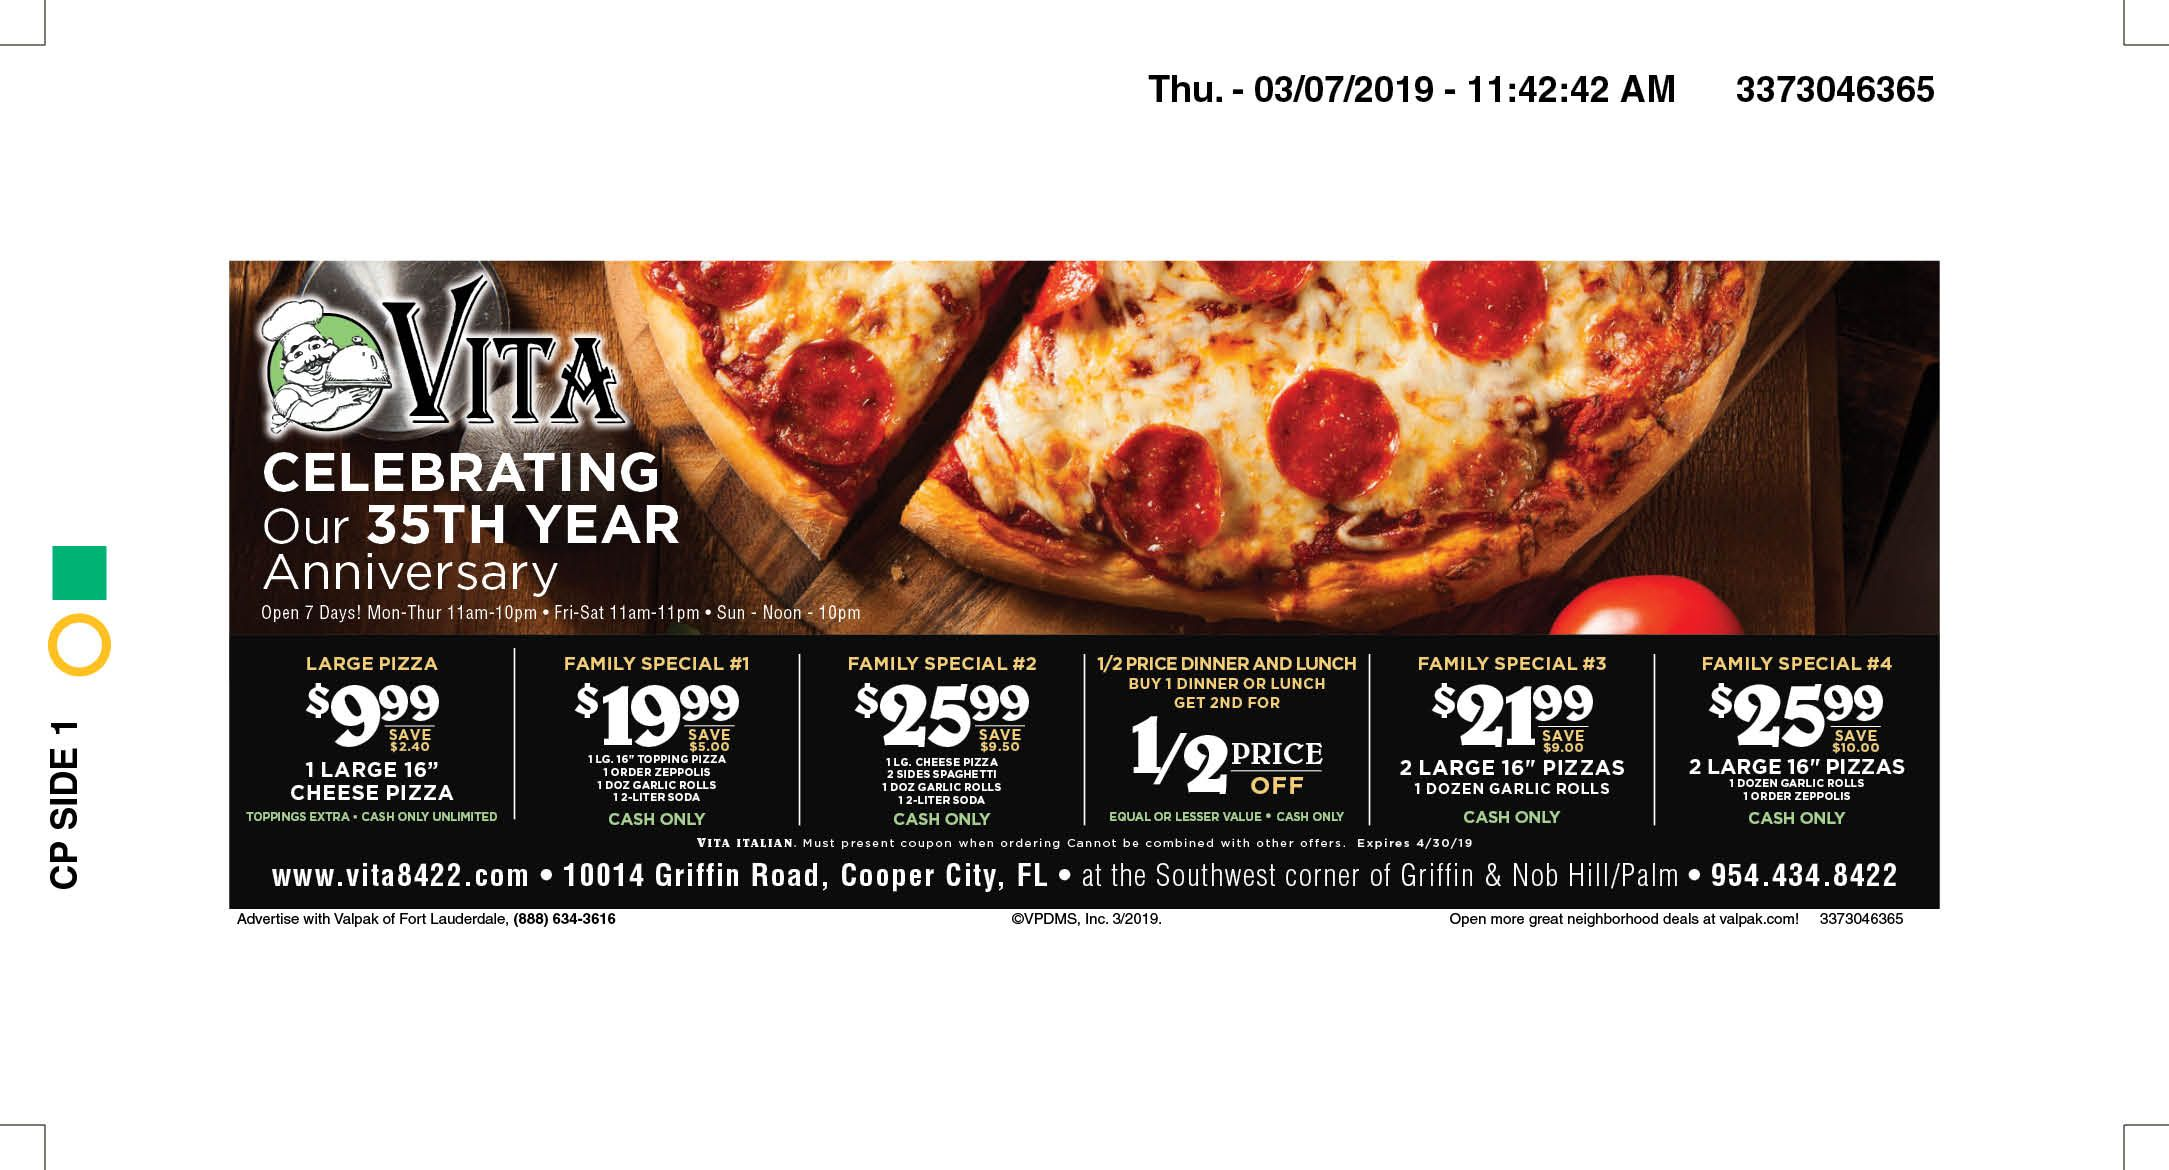 Vita Italian Restaurant Pizza In Cooper City Fl Local Coupons March 2019 Restaurant Coupons Italian Restaurant Pizza Coupons